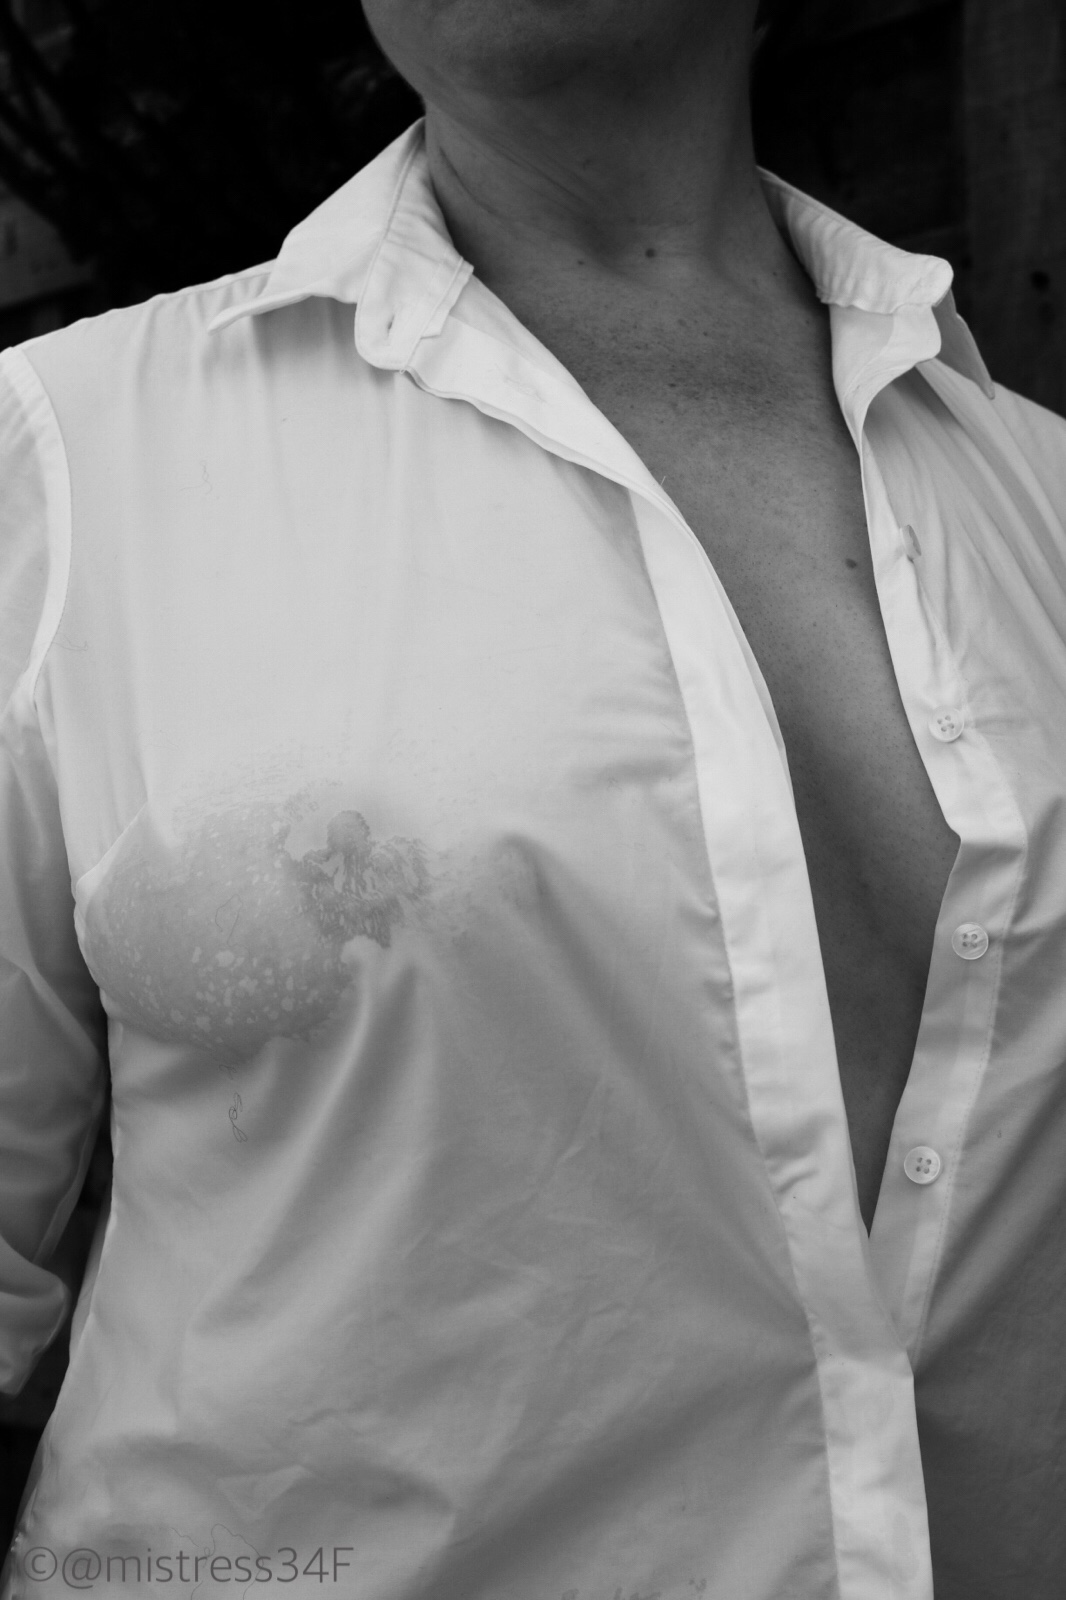 Wet White Shirt